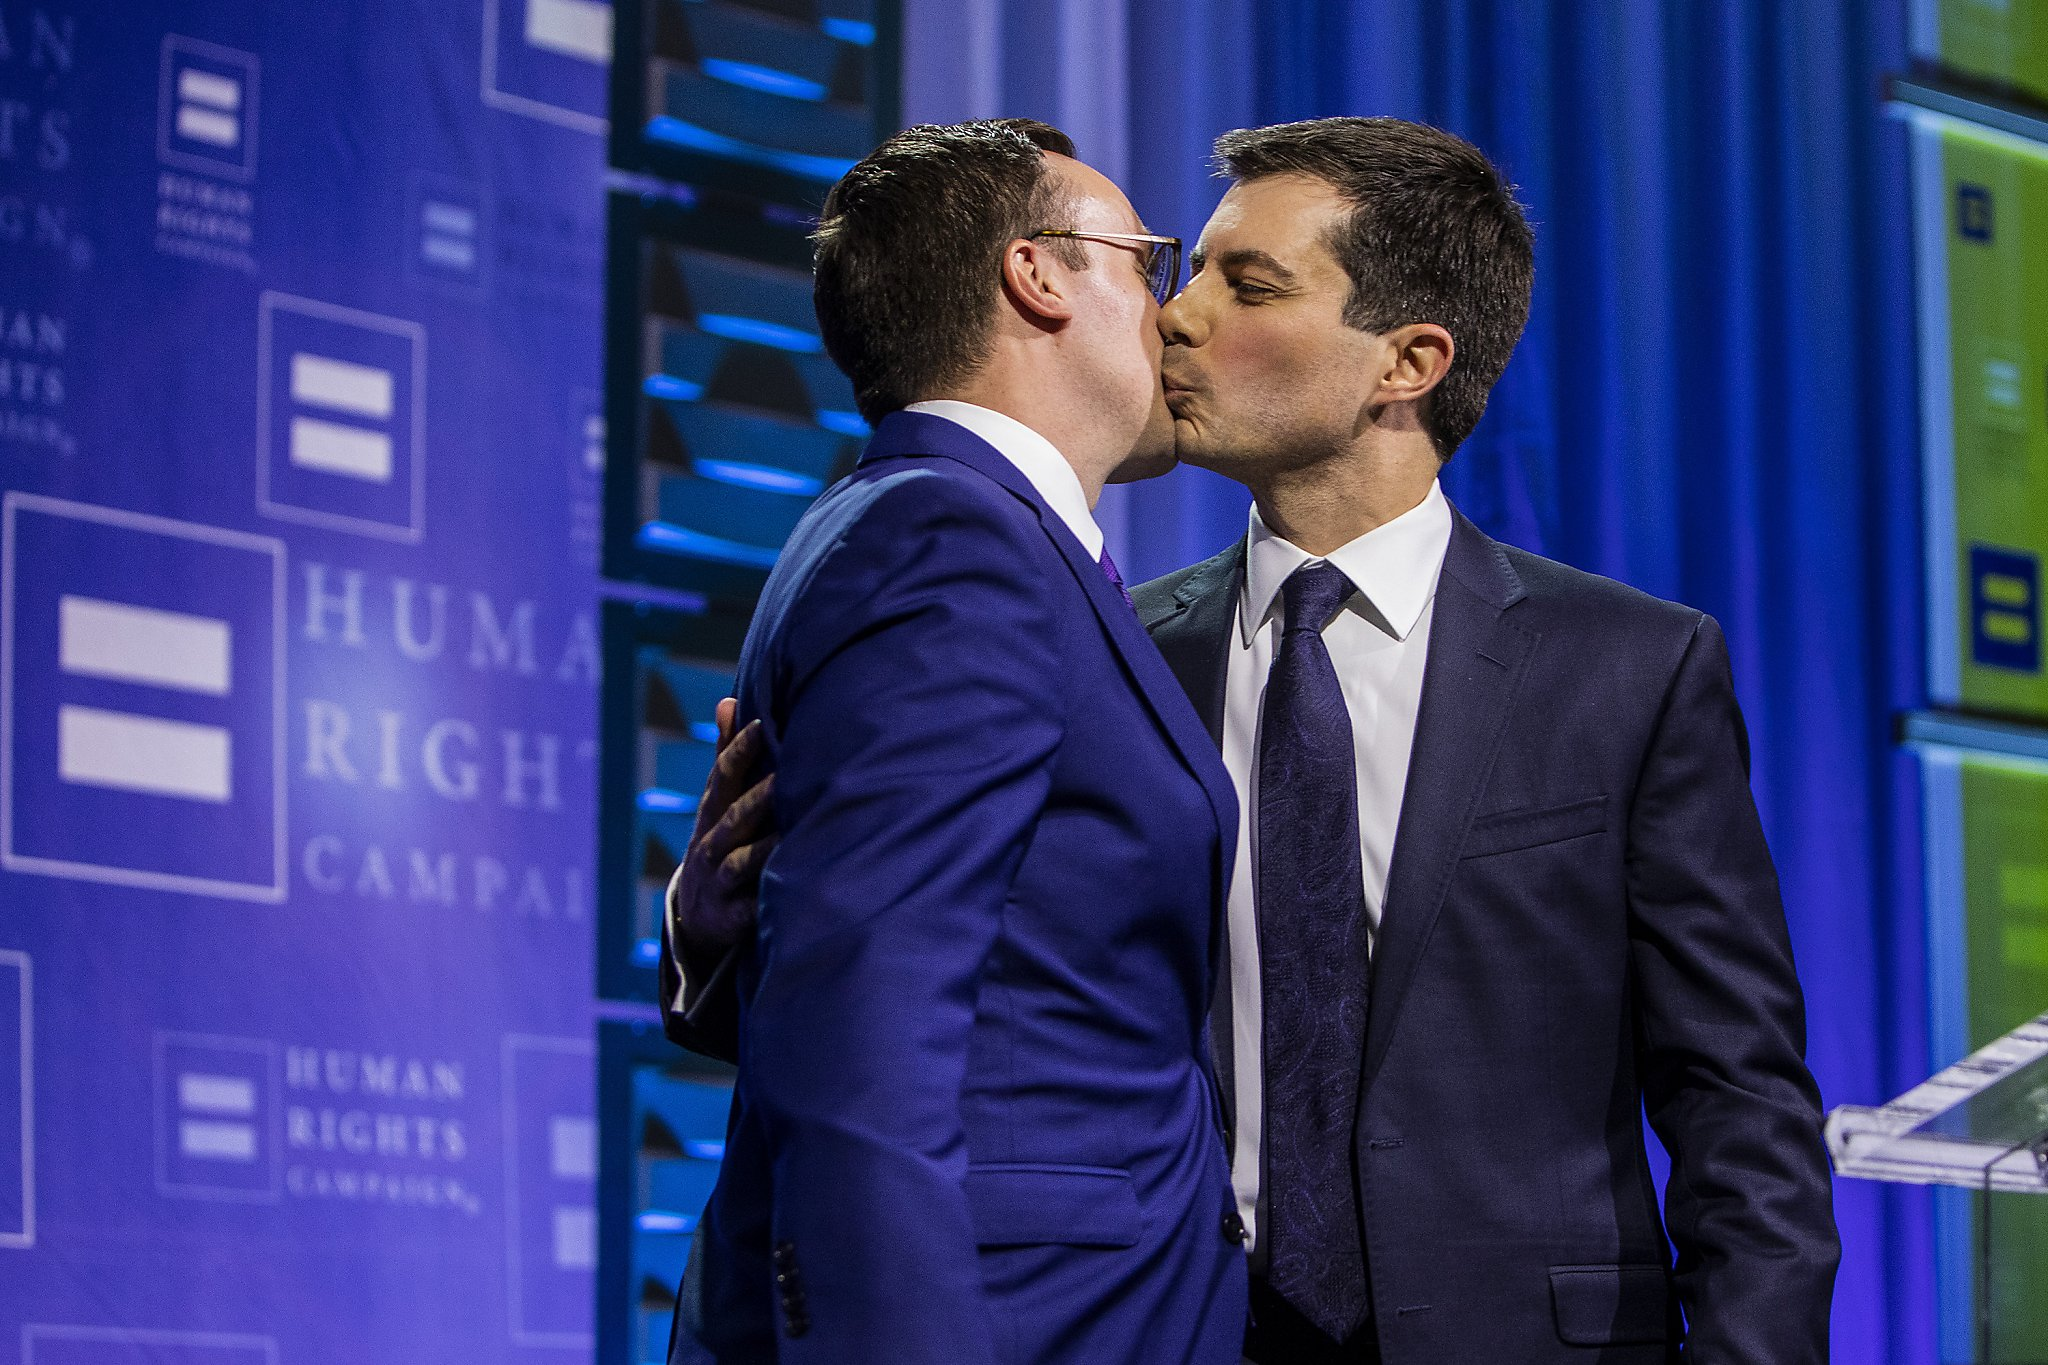 Pete Buttigieg's campaign asset: 'Do I have a great husband or what?' - SFChronicle.com